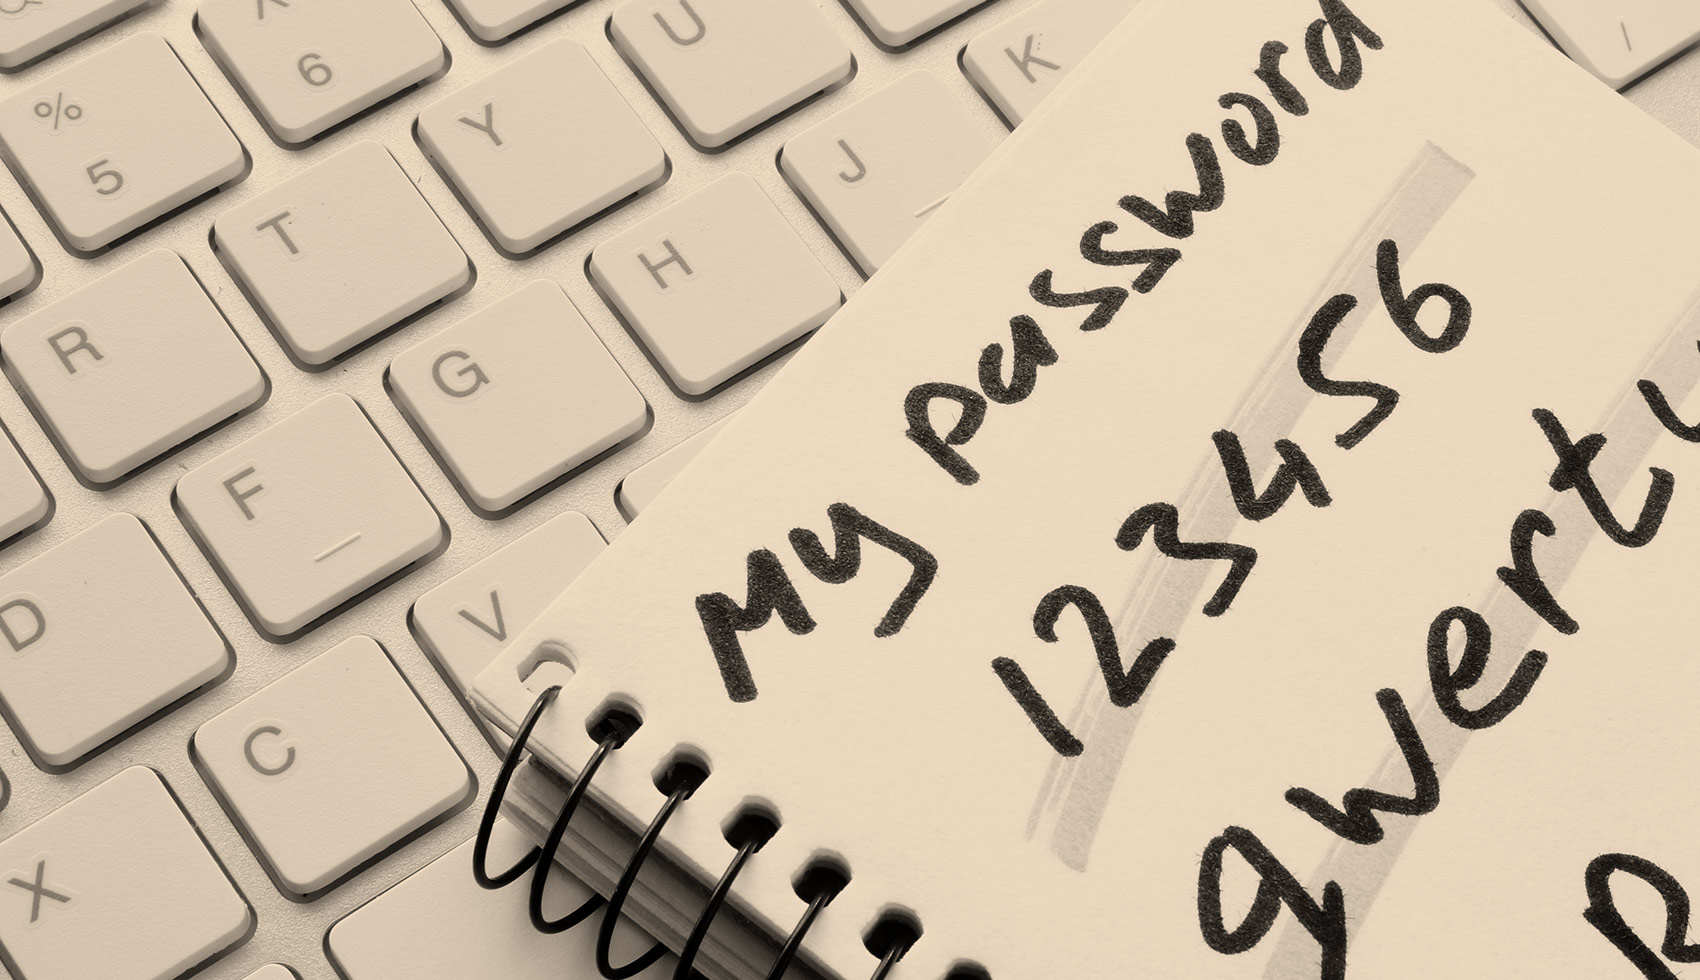 Provide clear guidelines for password creation.